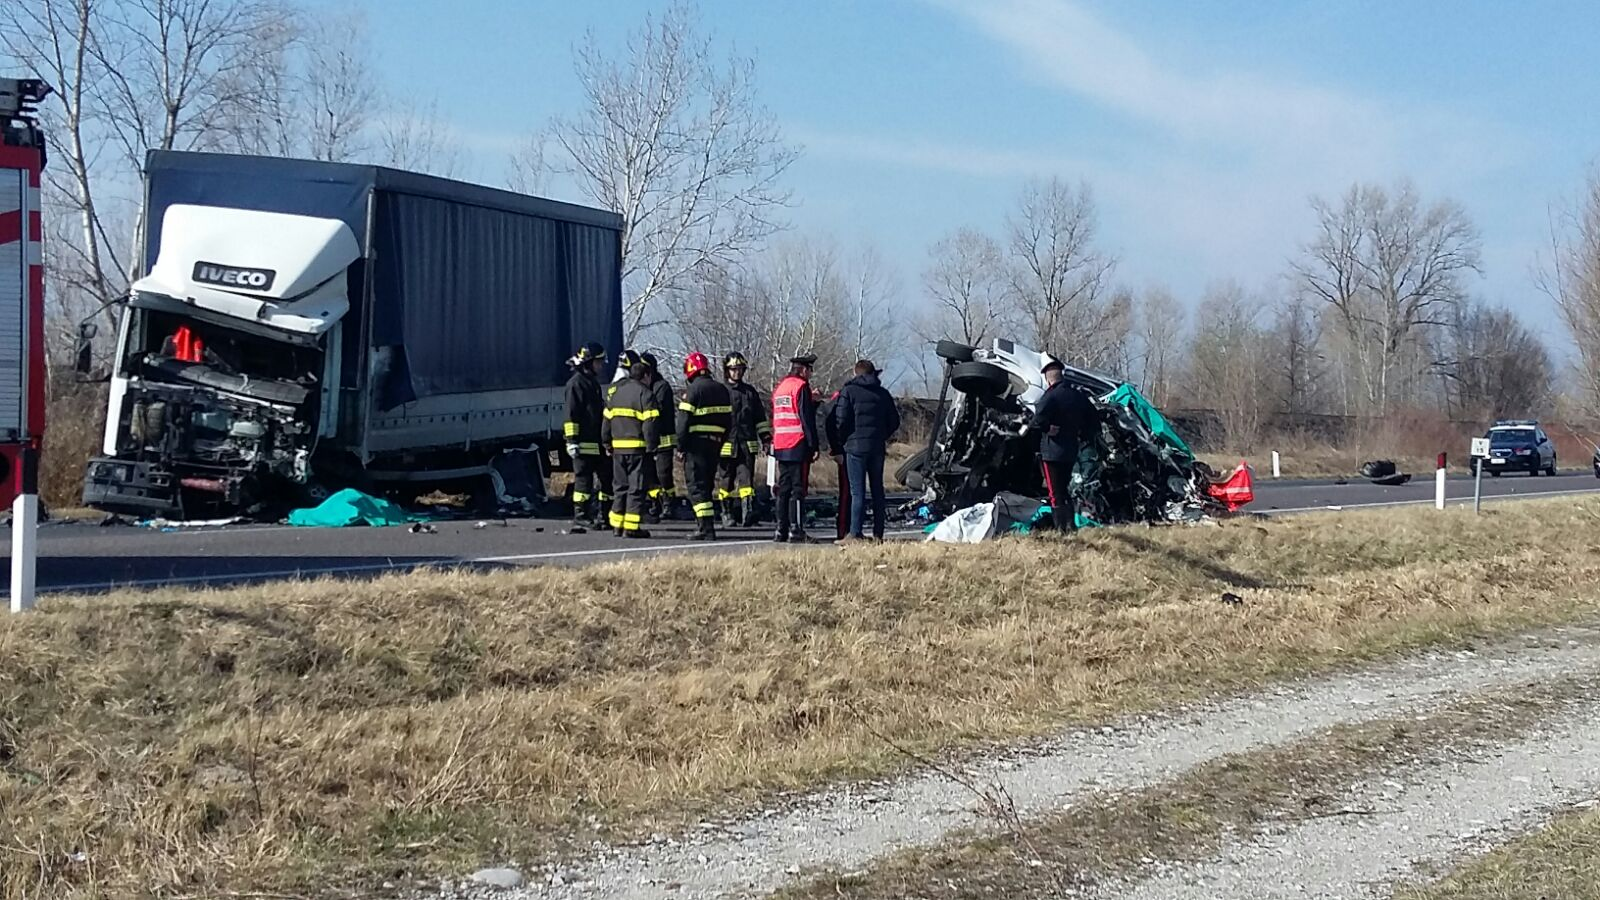 GRAVE INCIDENTE: TRE MORTI SULLA CIMPELLO SEQUALS